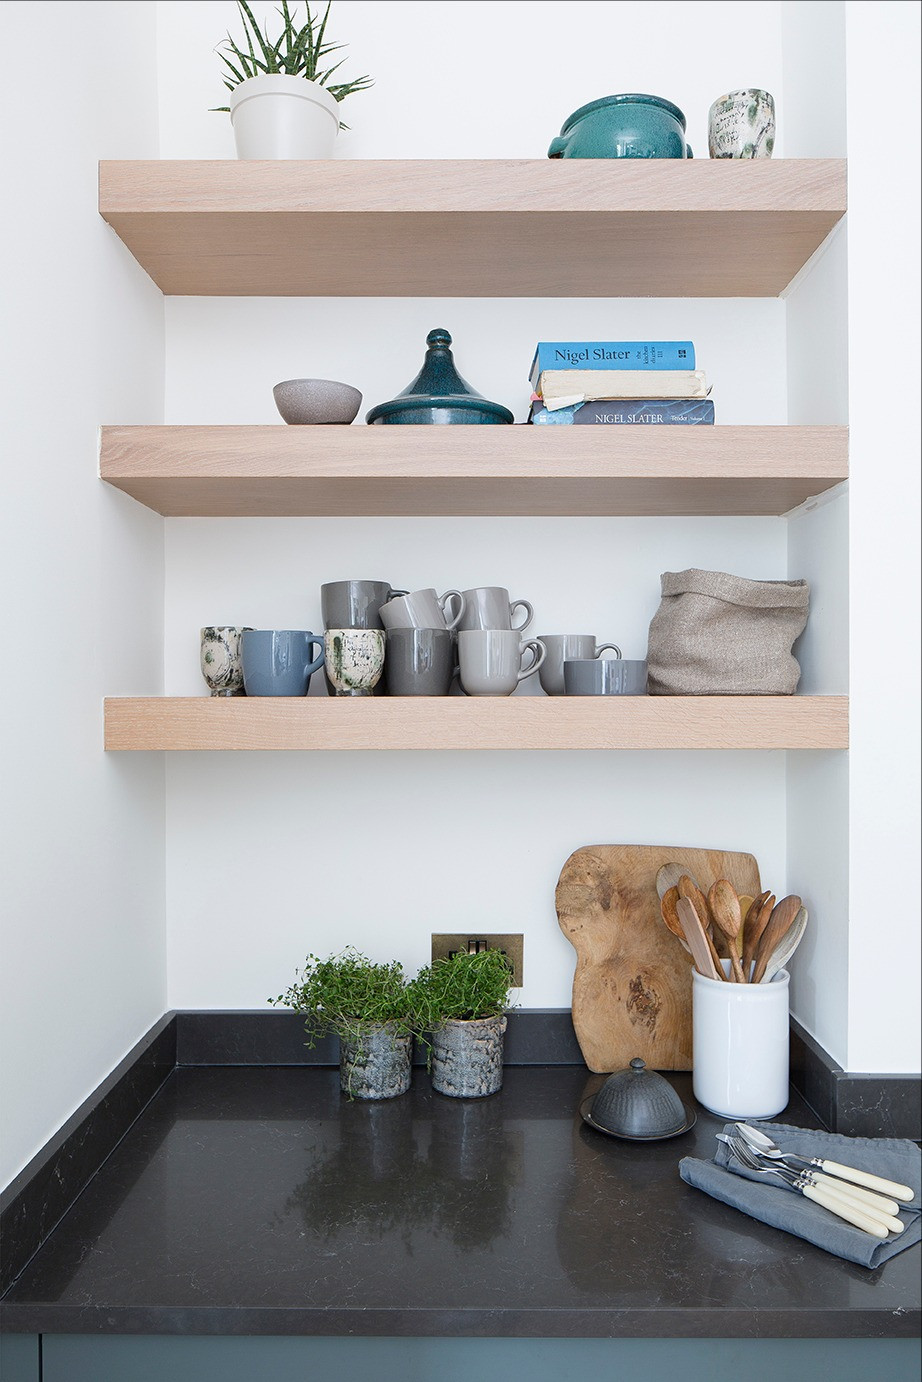 Blue and grey tableware on wooden shelves